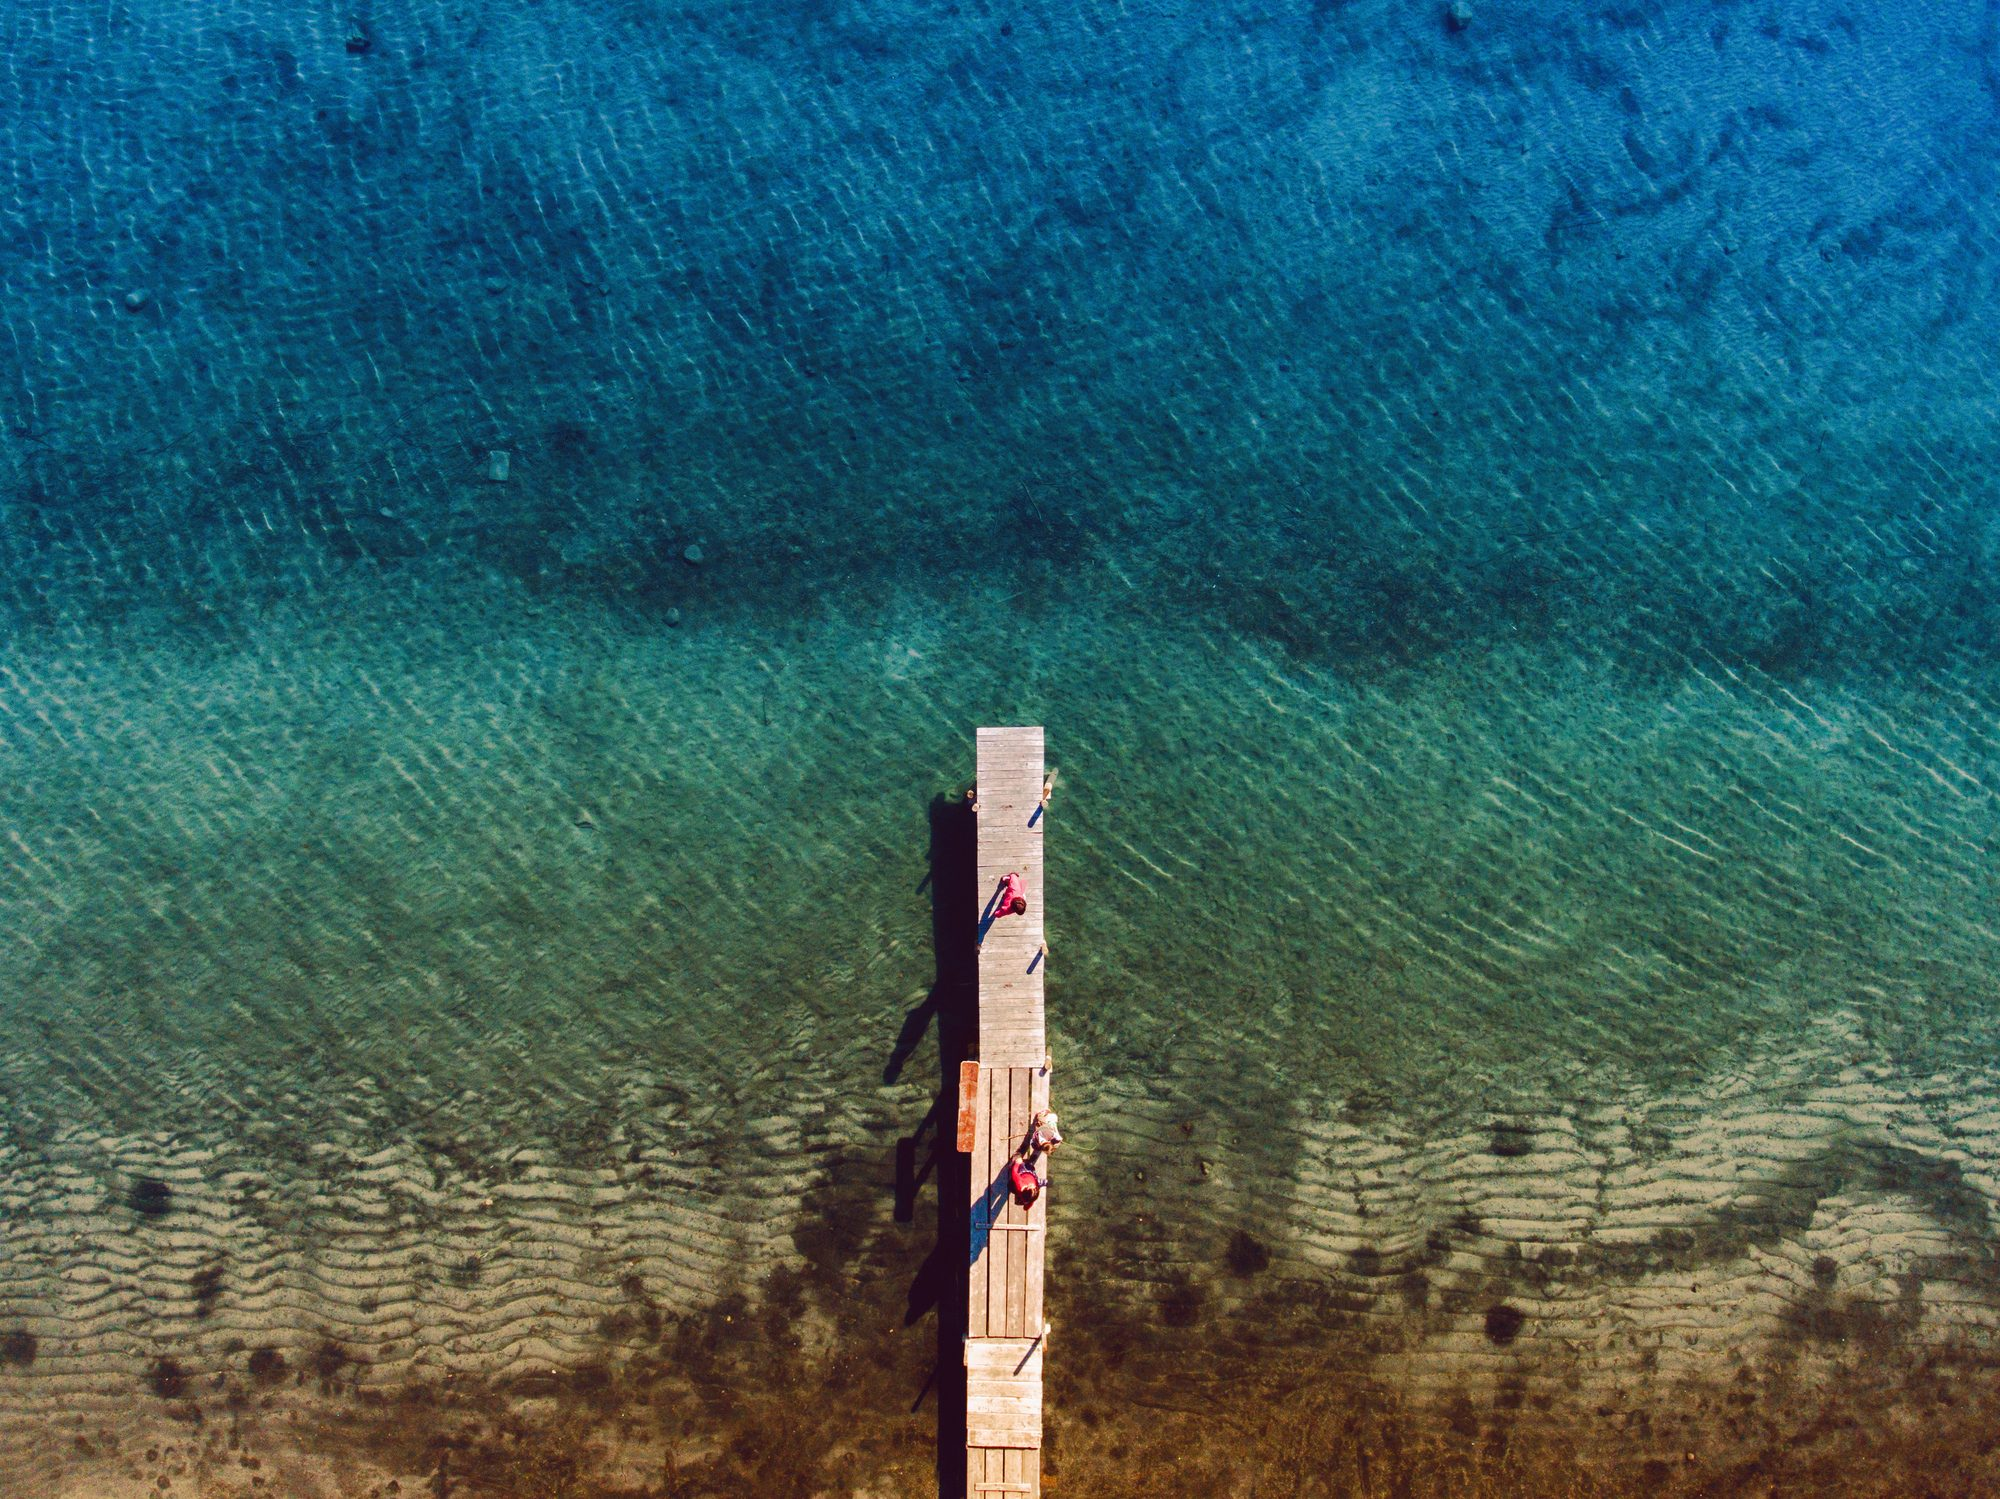 Aerial view of people standing on pier at lake